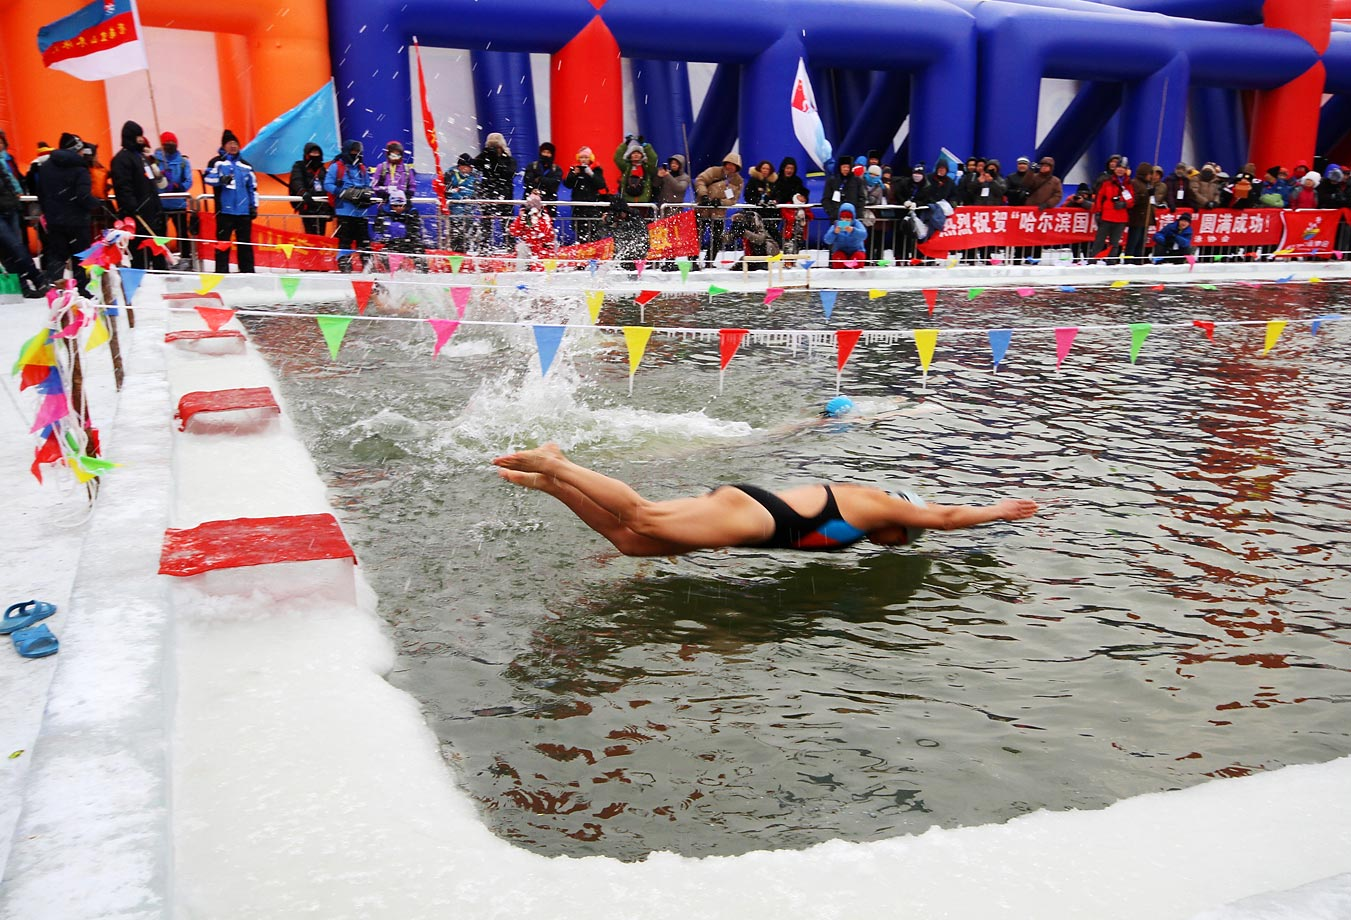 A swimmer dives into a pool during the 16th Harbin International Ice and Snow Festival in Harbin, Heilongjiang province of China.